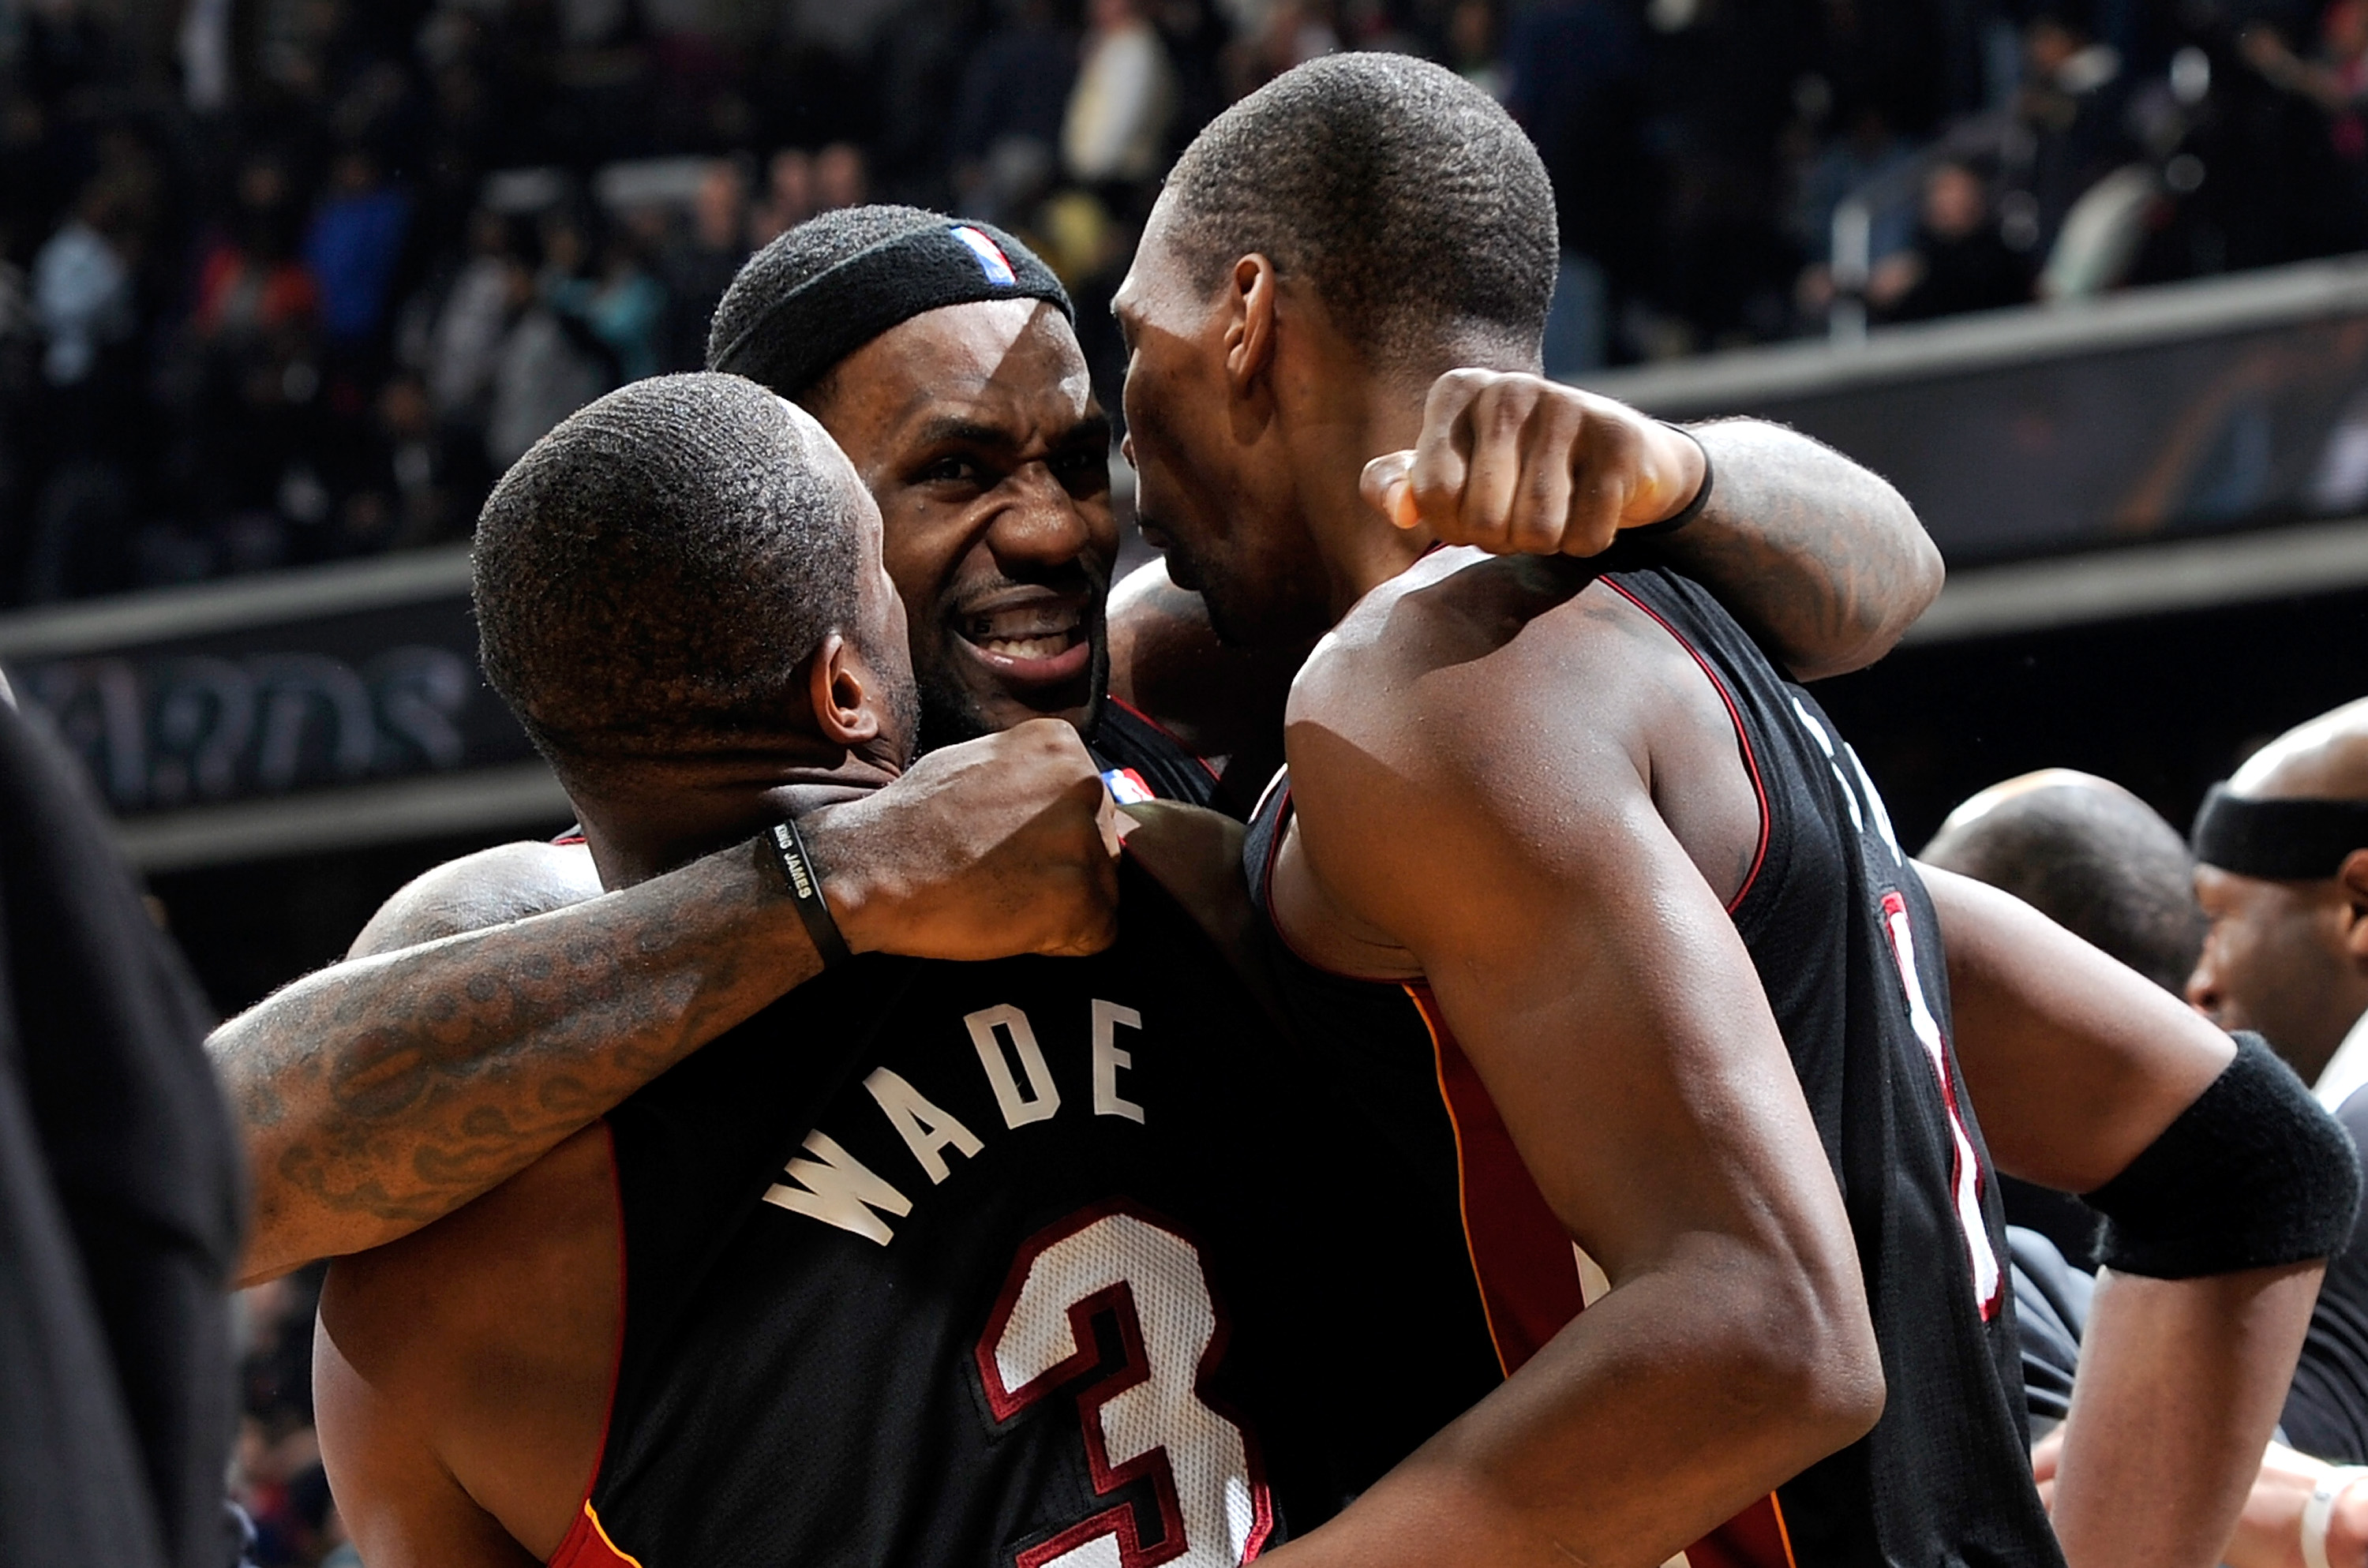 WASHINGTON - DECEMBER 18:  LeBron James #6 of the Miami Heat celebrates with Dwyane Wade #3 and Chris Bosh #1 after a 95-94 victory over the Washington Wizards at the Verizon Center on December 18, 2010 in Washington, DC. NOTE TO USER: User expressly ackn